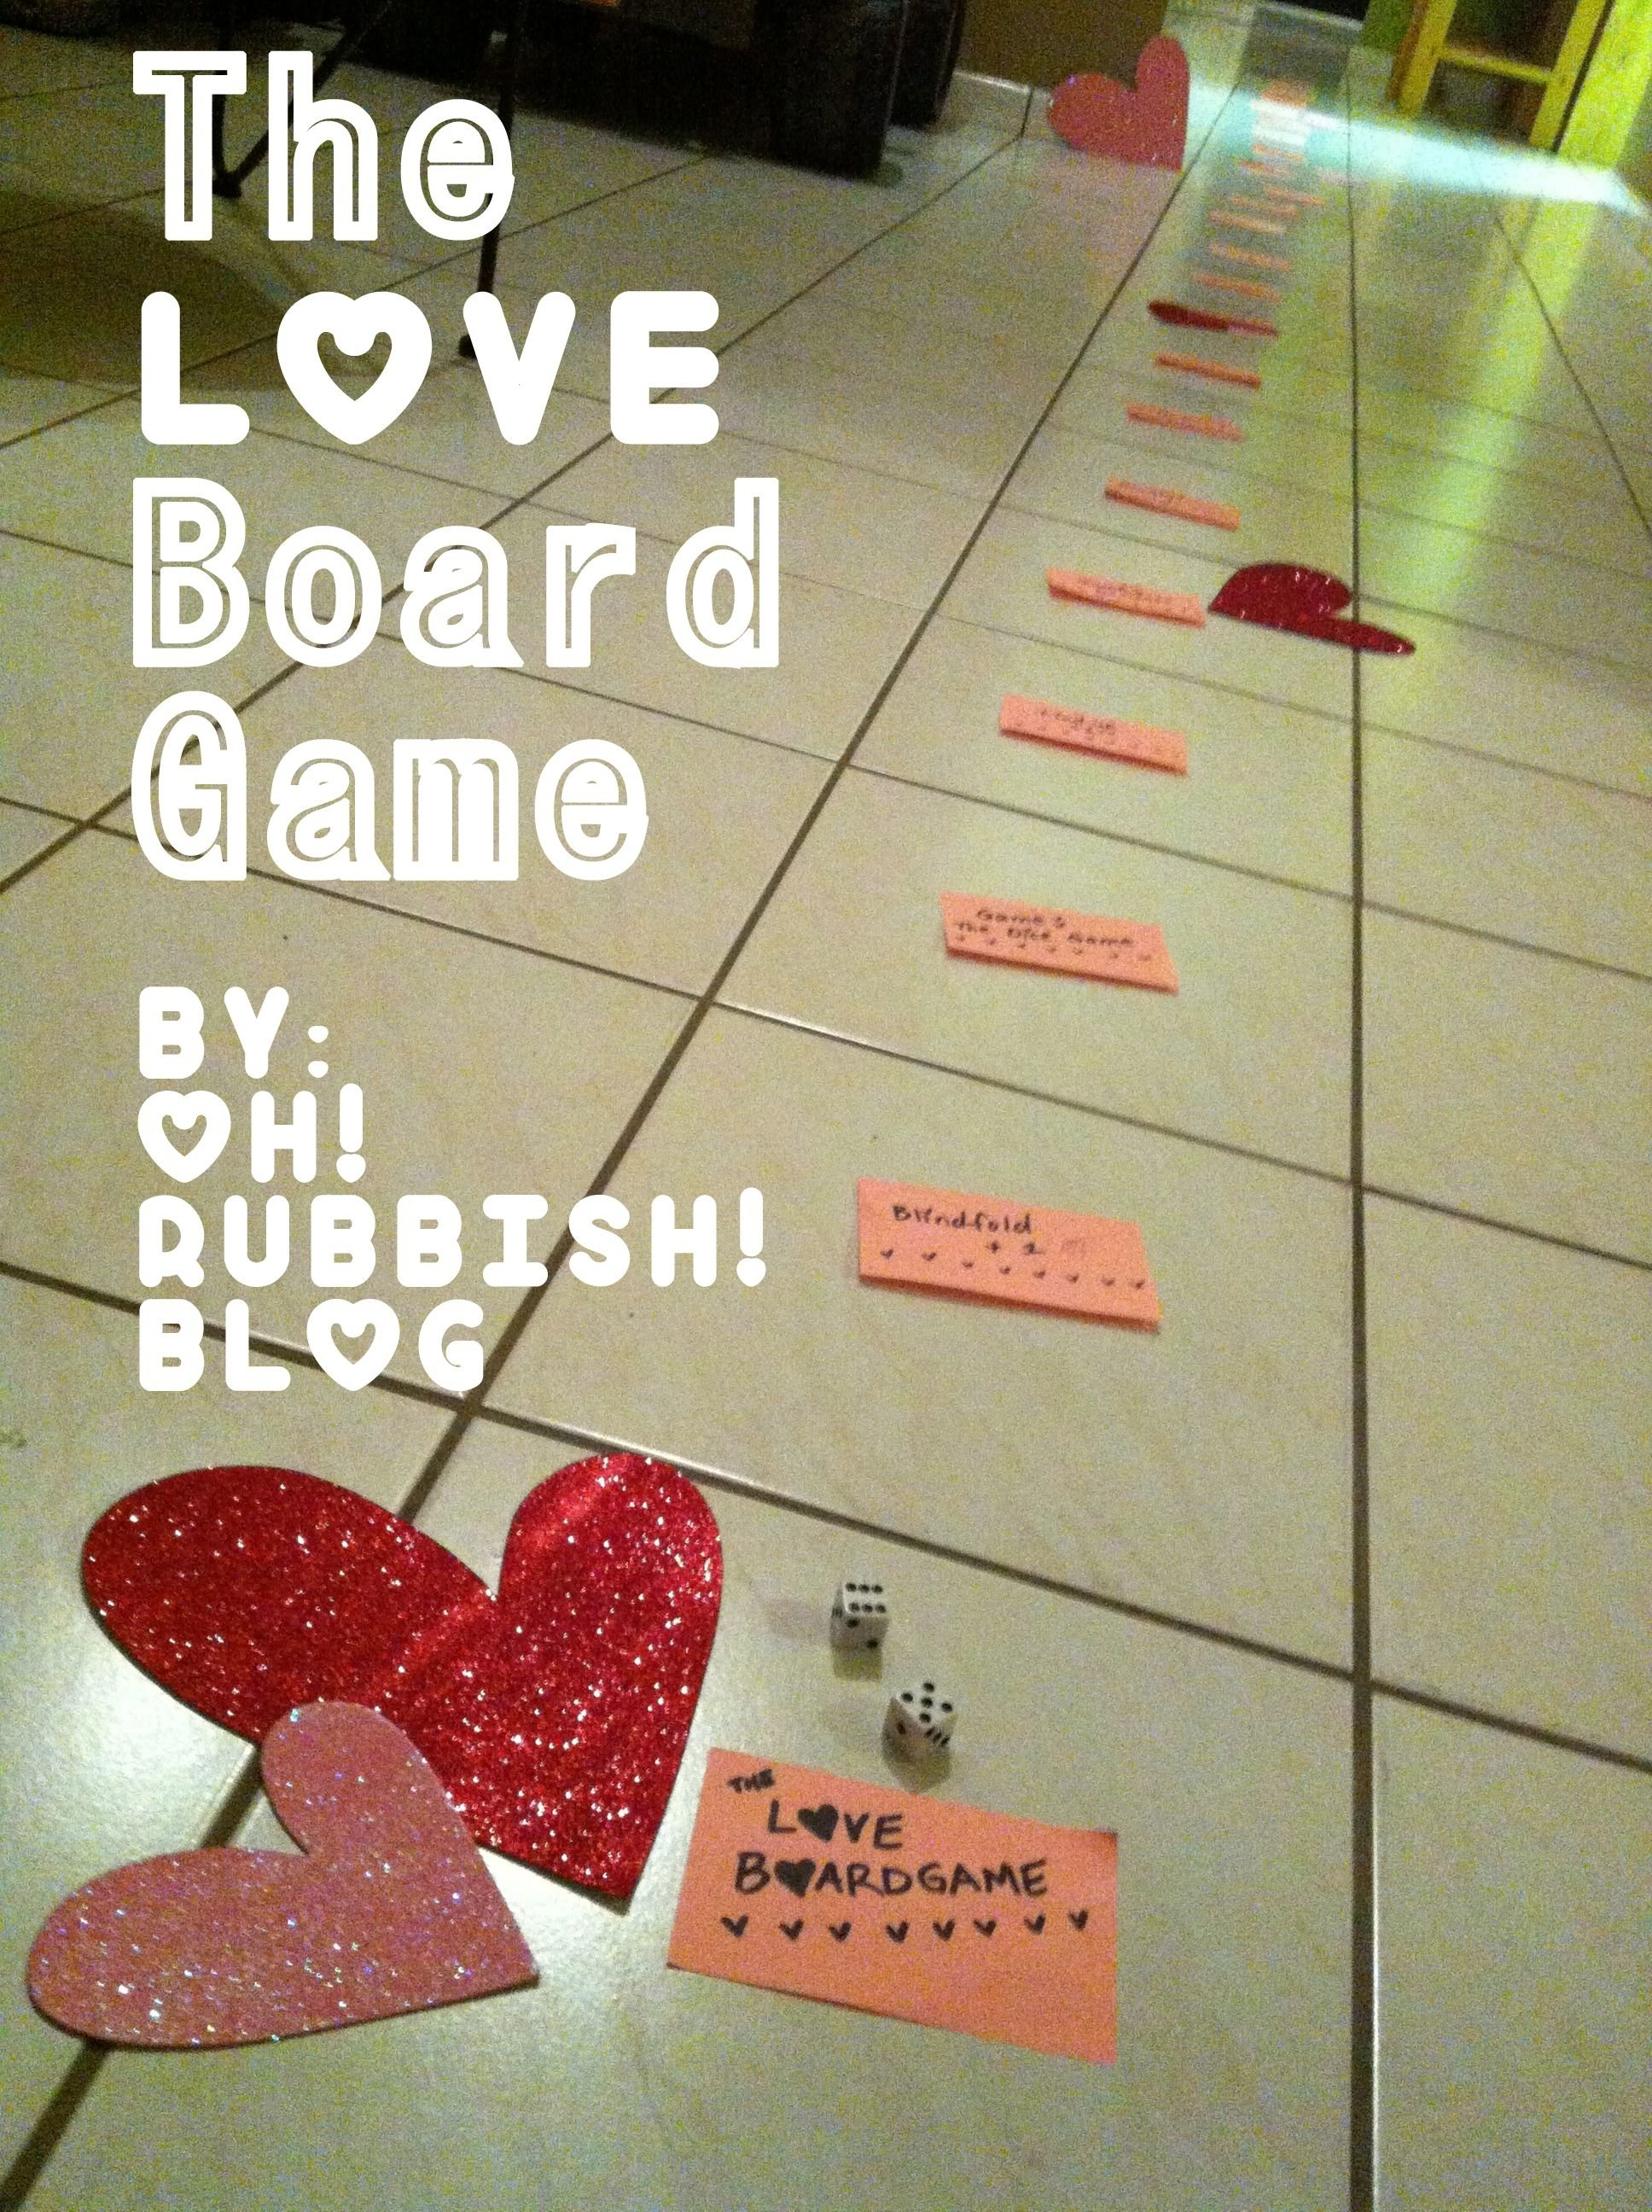 10 Awesome Good Ideas For Valentines Day the love board game valentine game for couples valentine day 12 2020